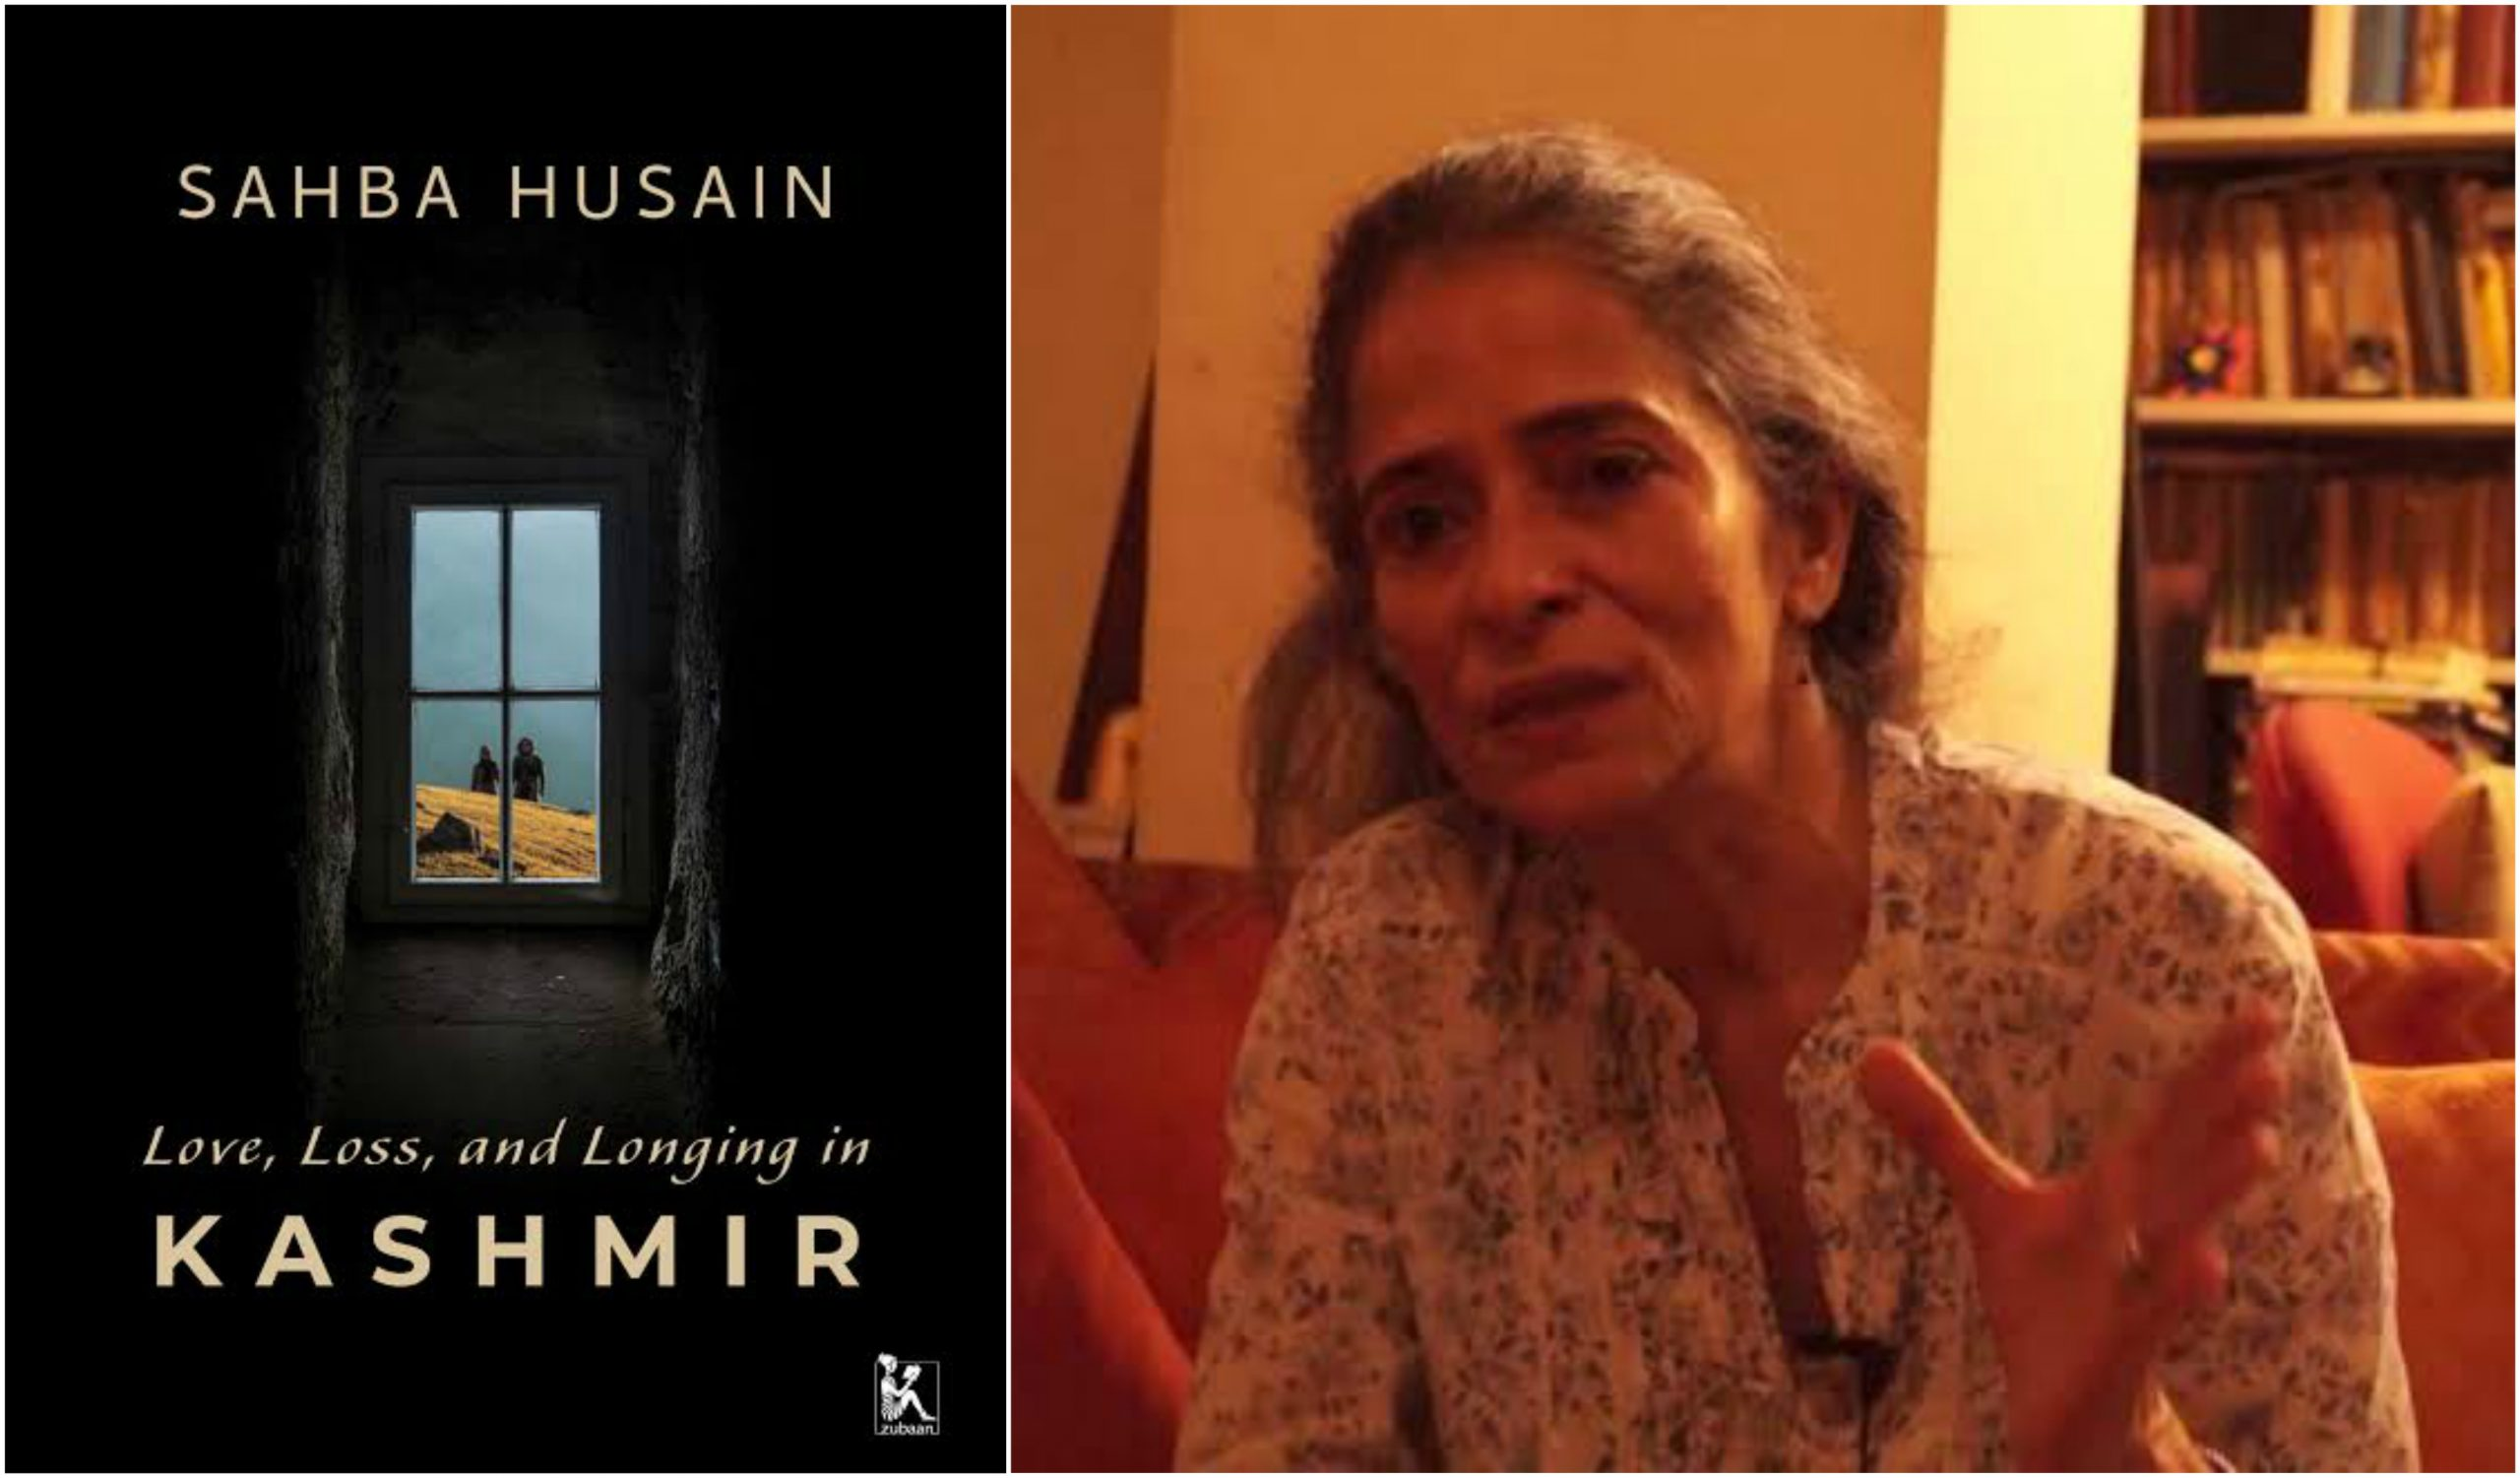 Book Review: Love, Loss, And Longing In Kashmir By Sahba Husain